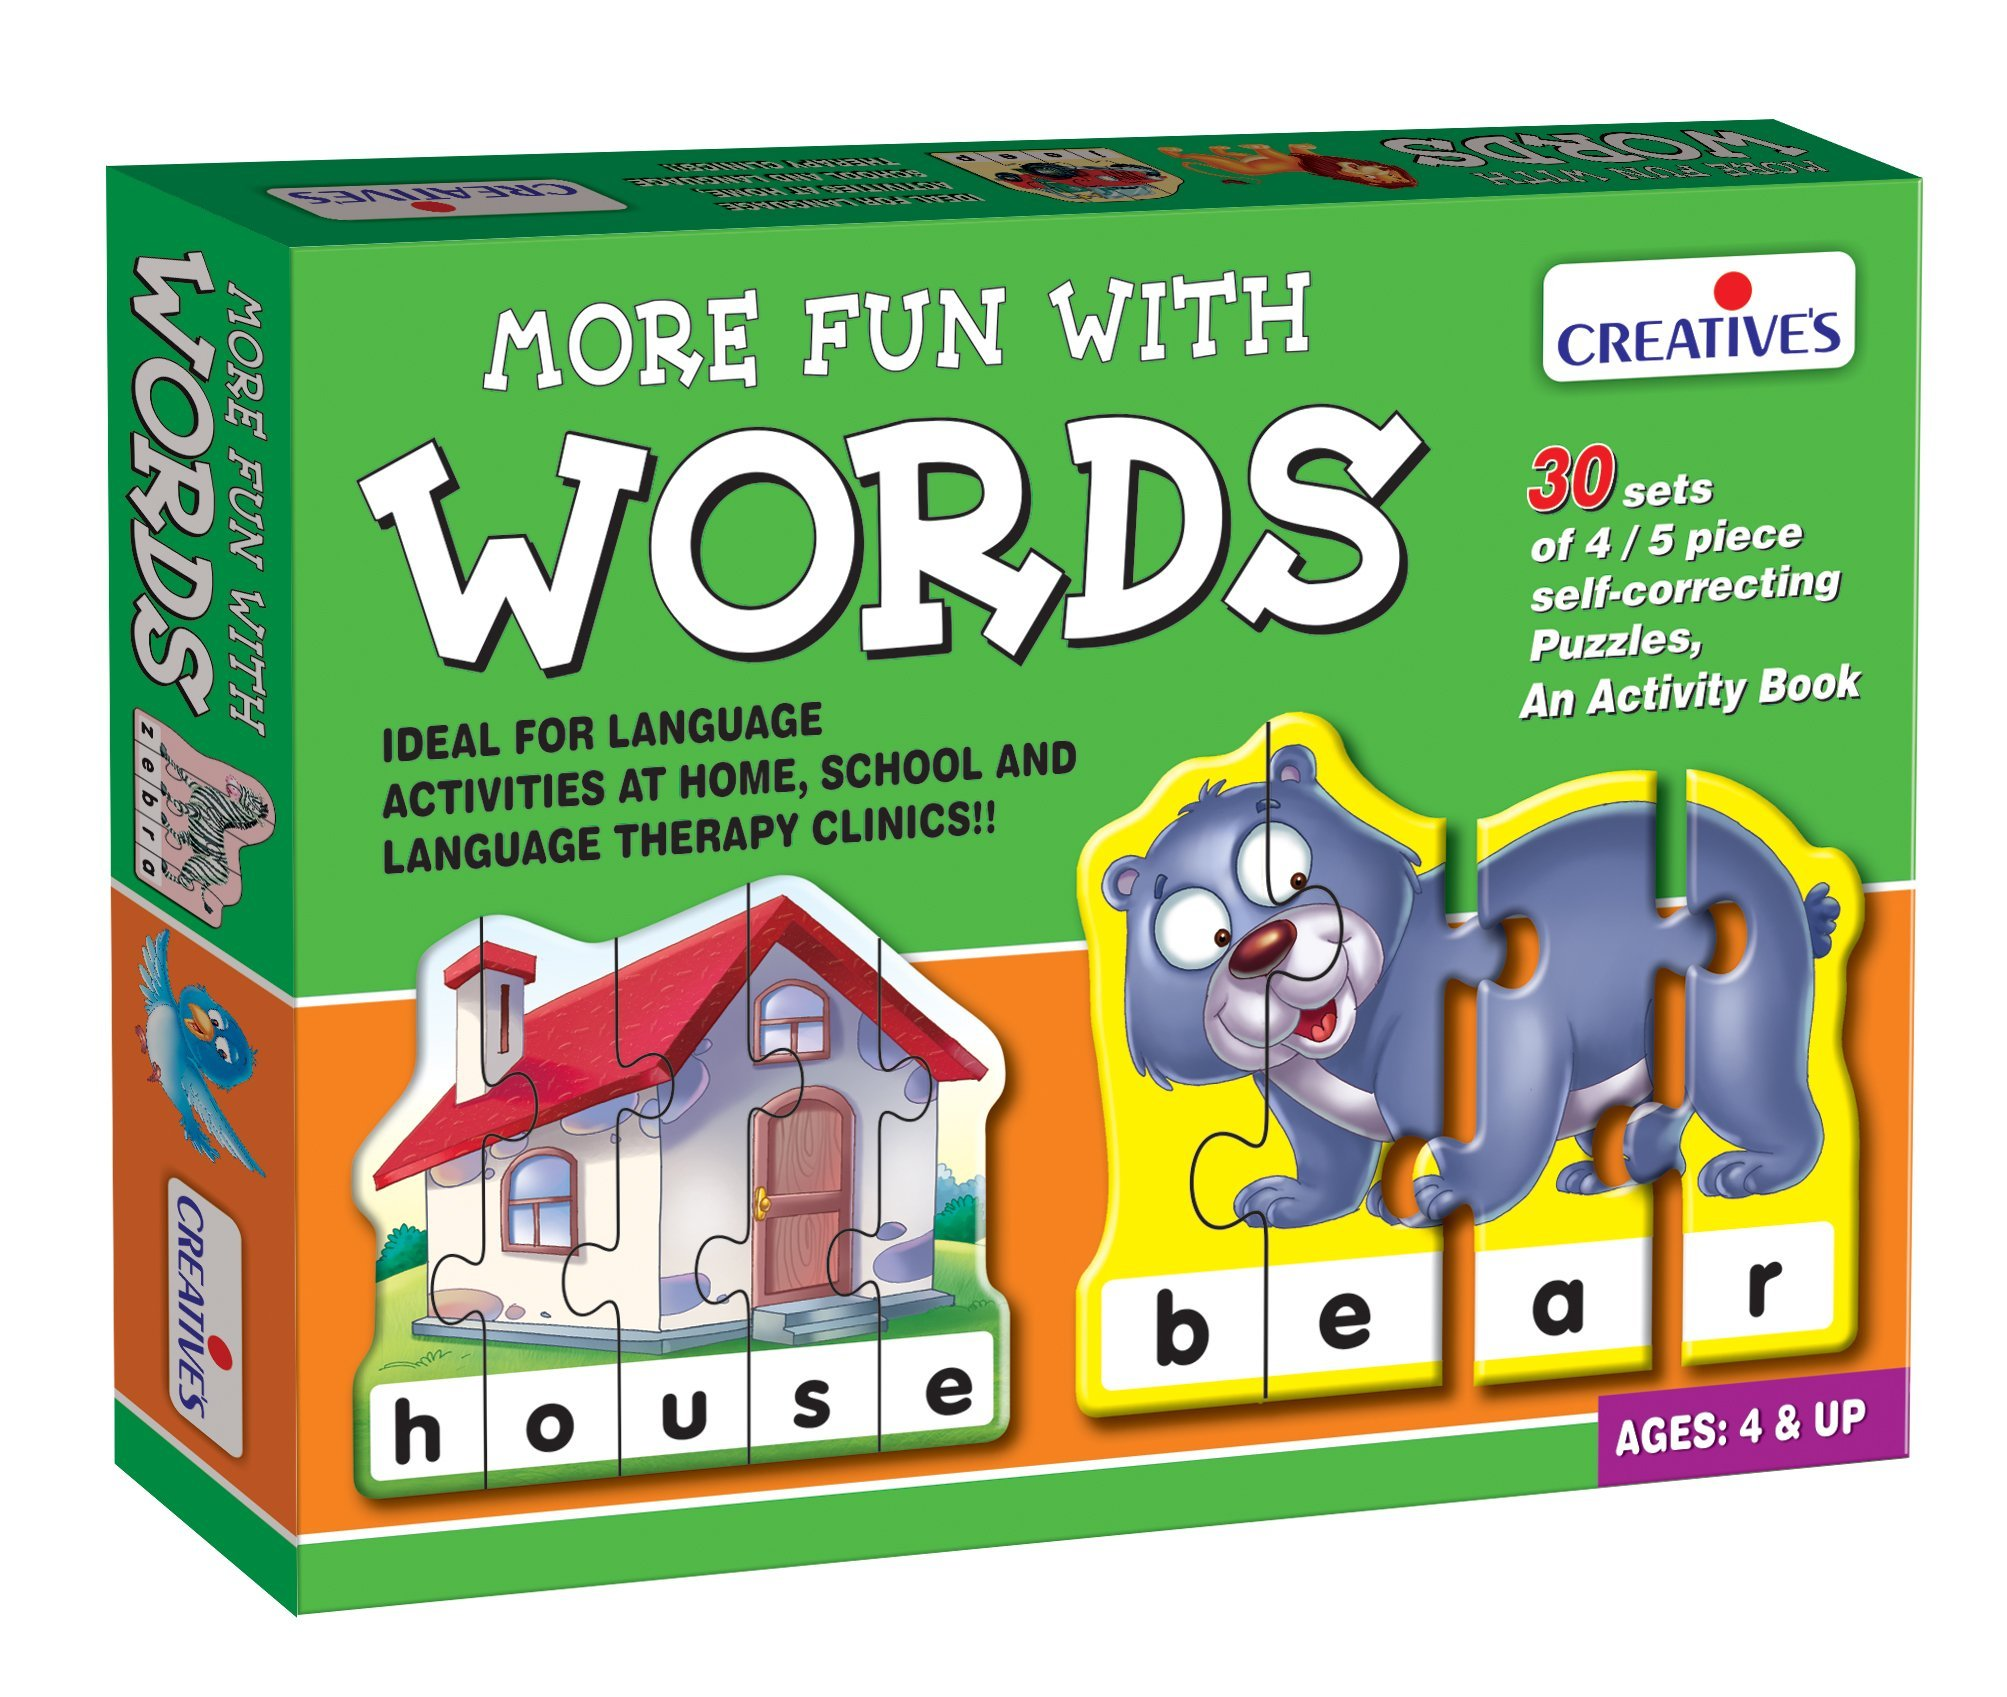 Creative's More Fun with Words Puzzle (Multi-Color) product image